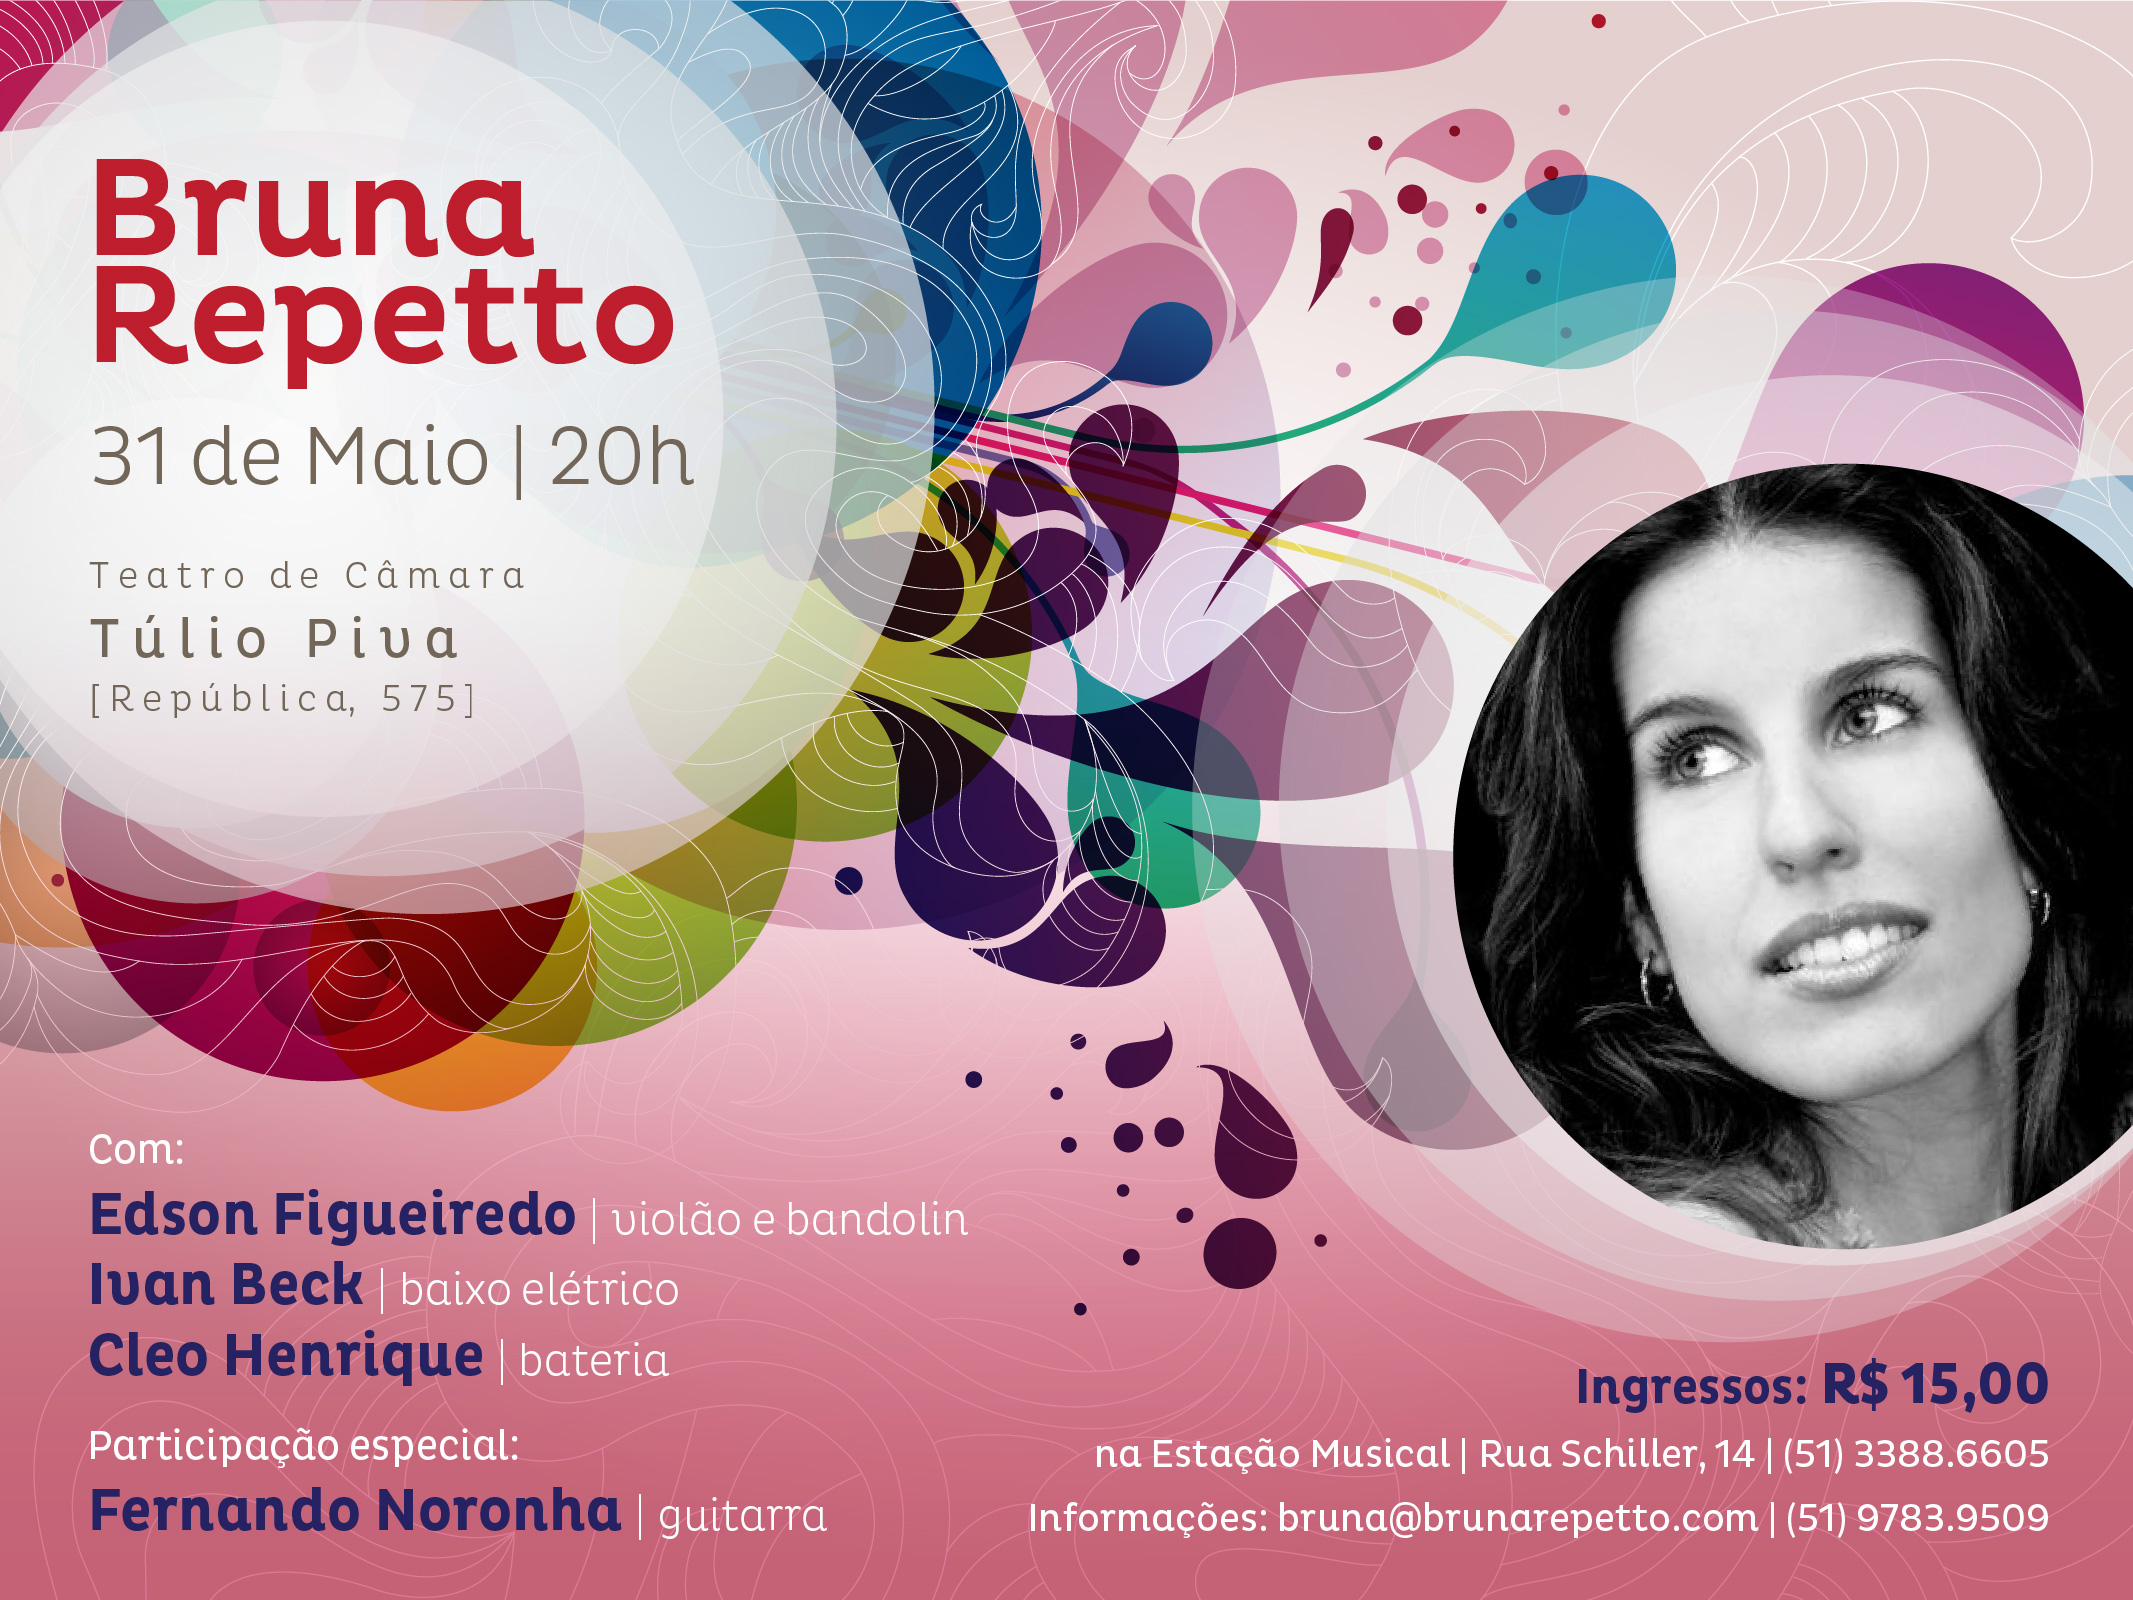 flyer bruna repetto final 02 02